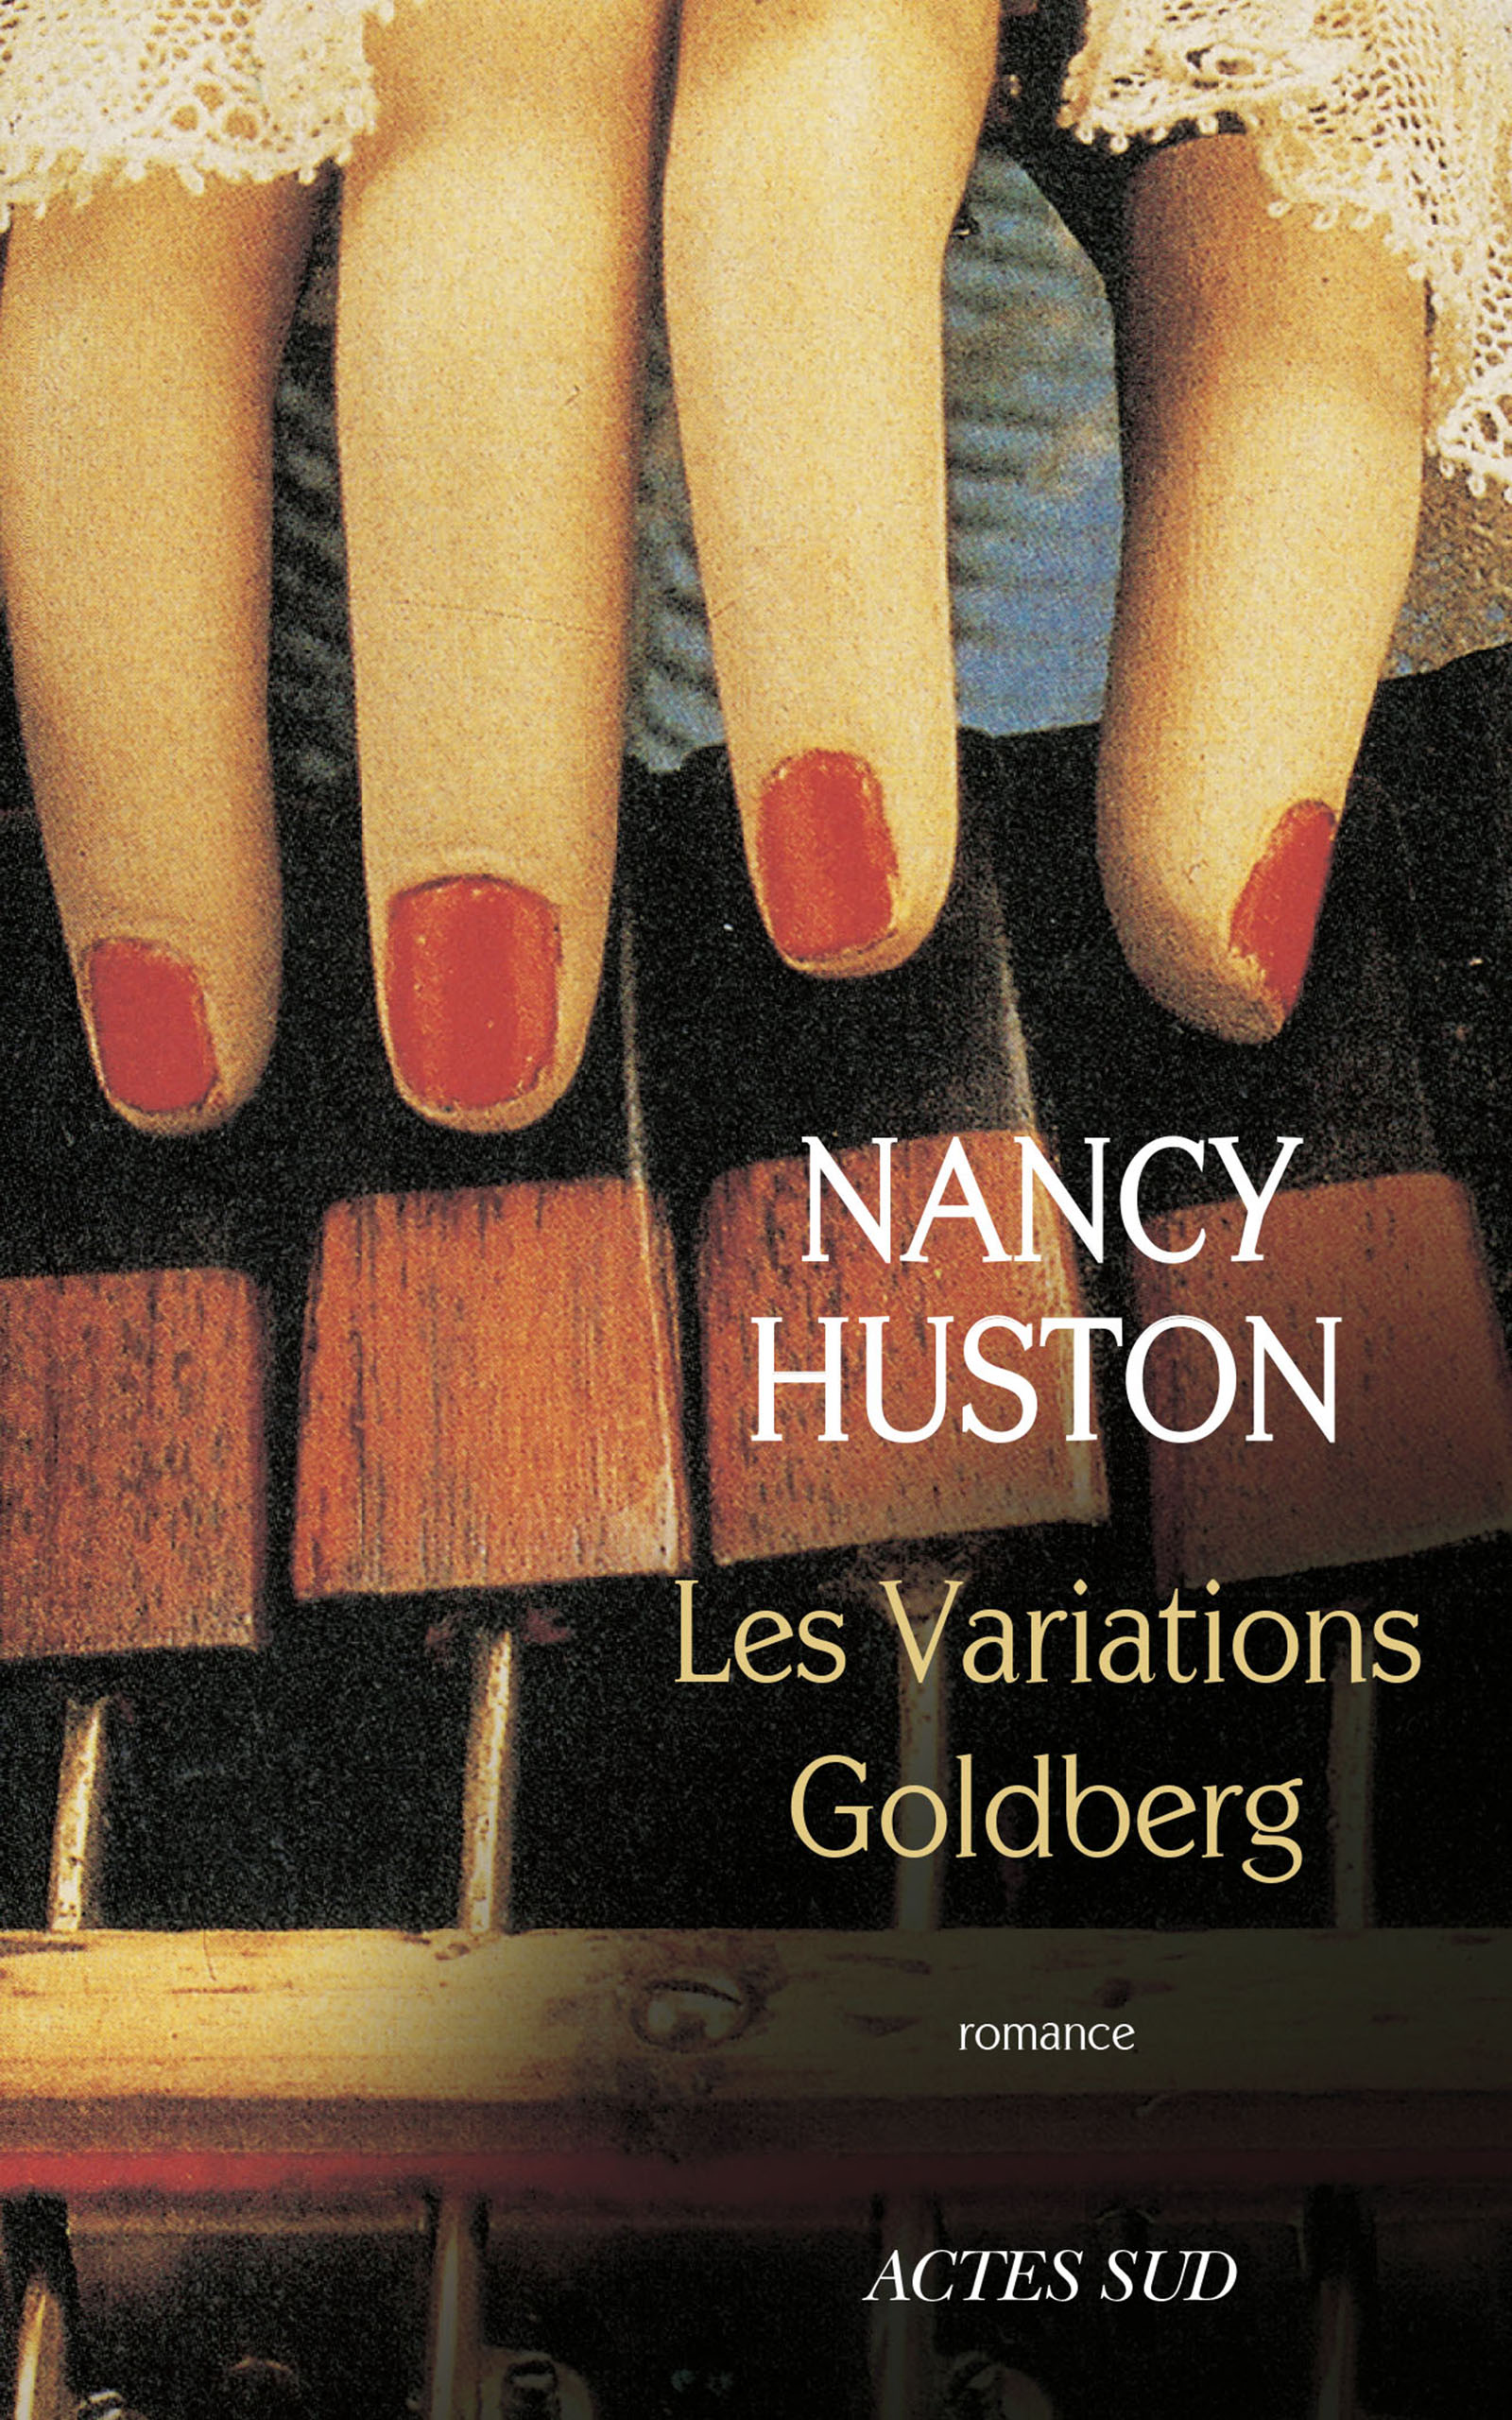 Les variations Goldberg